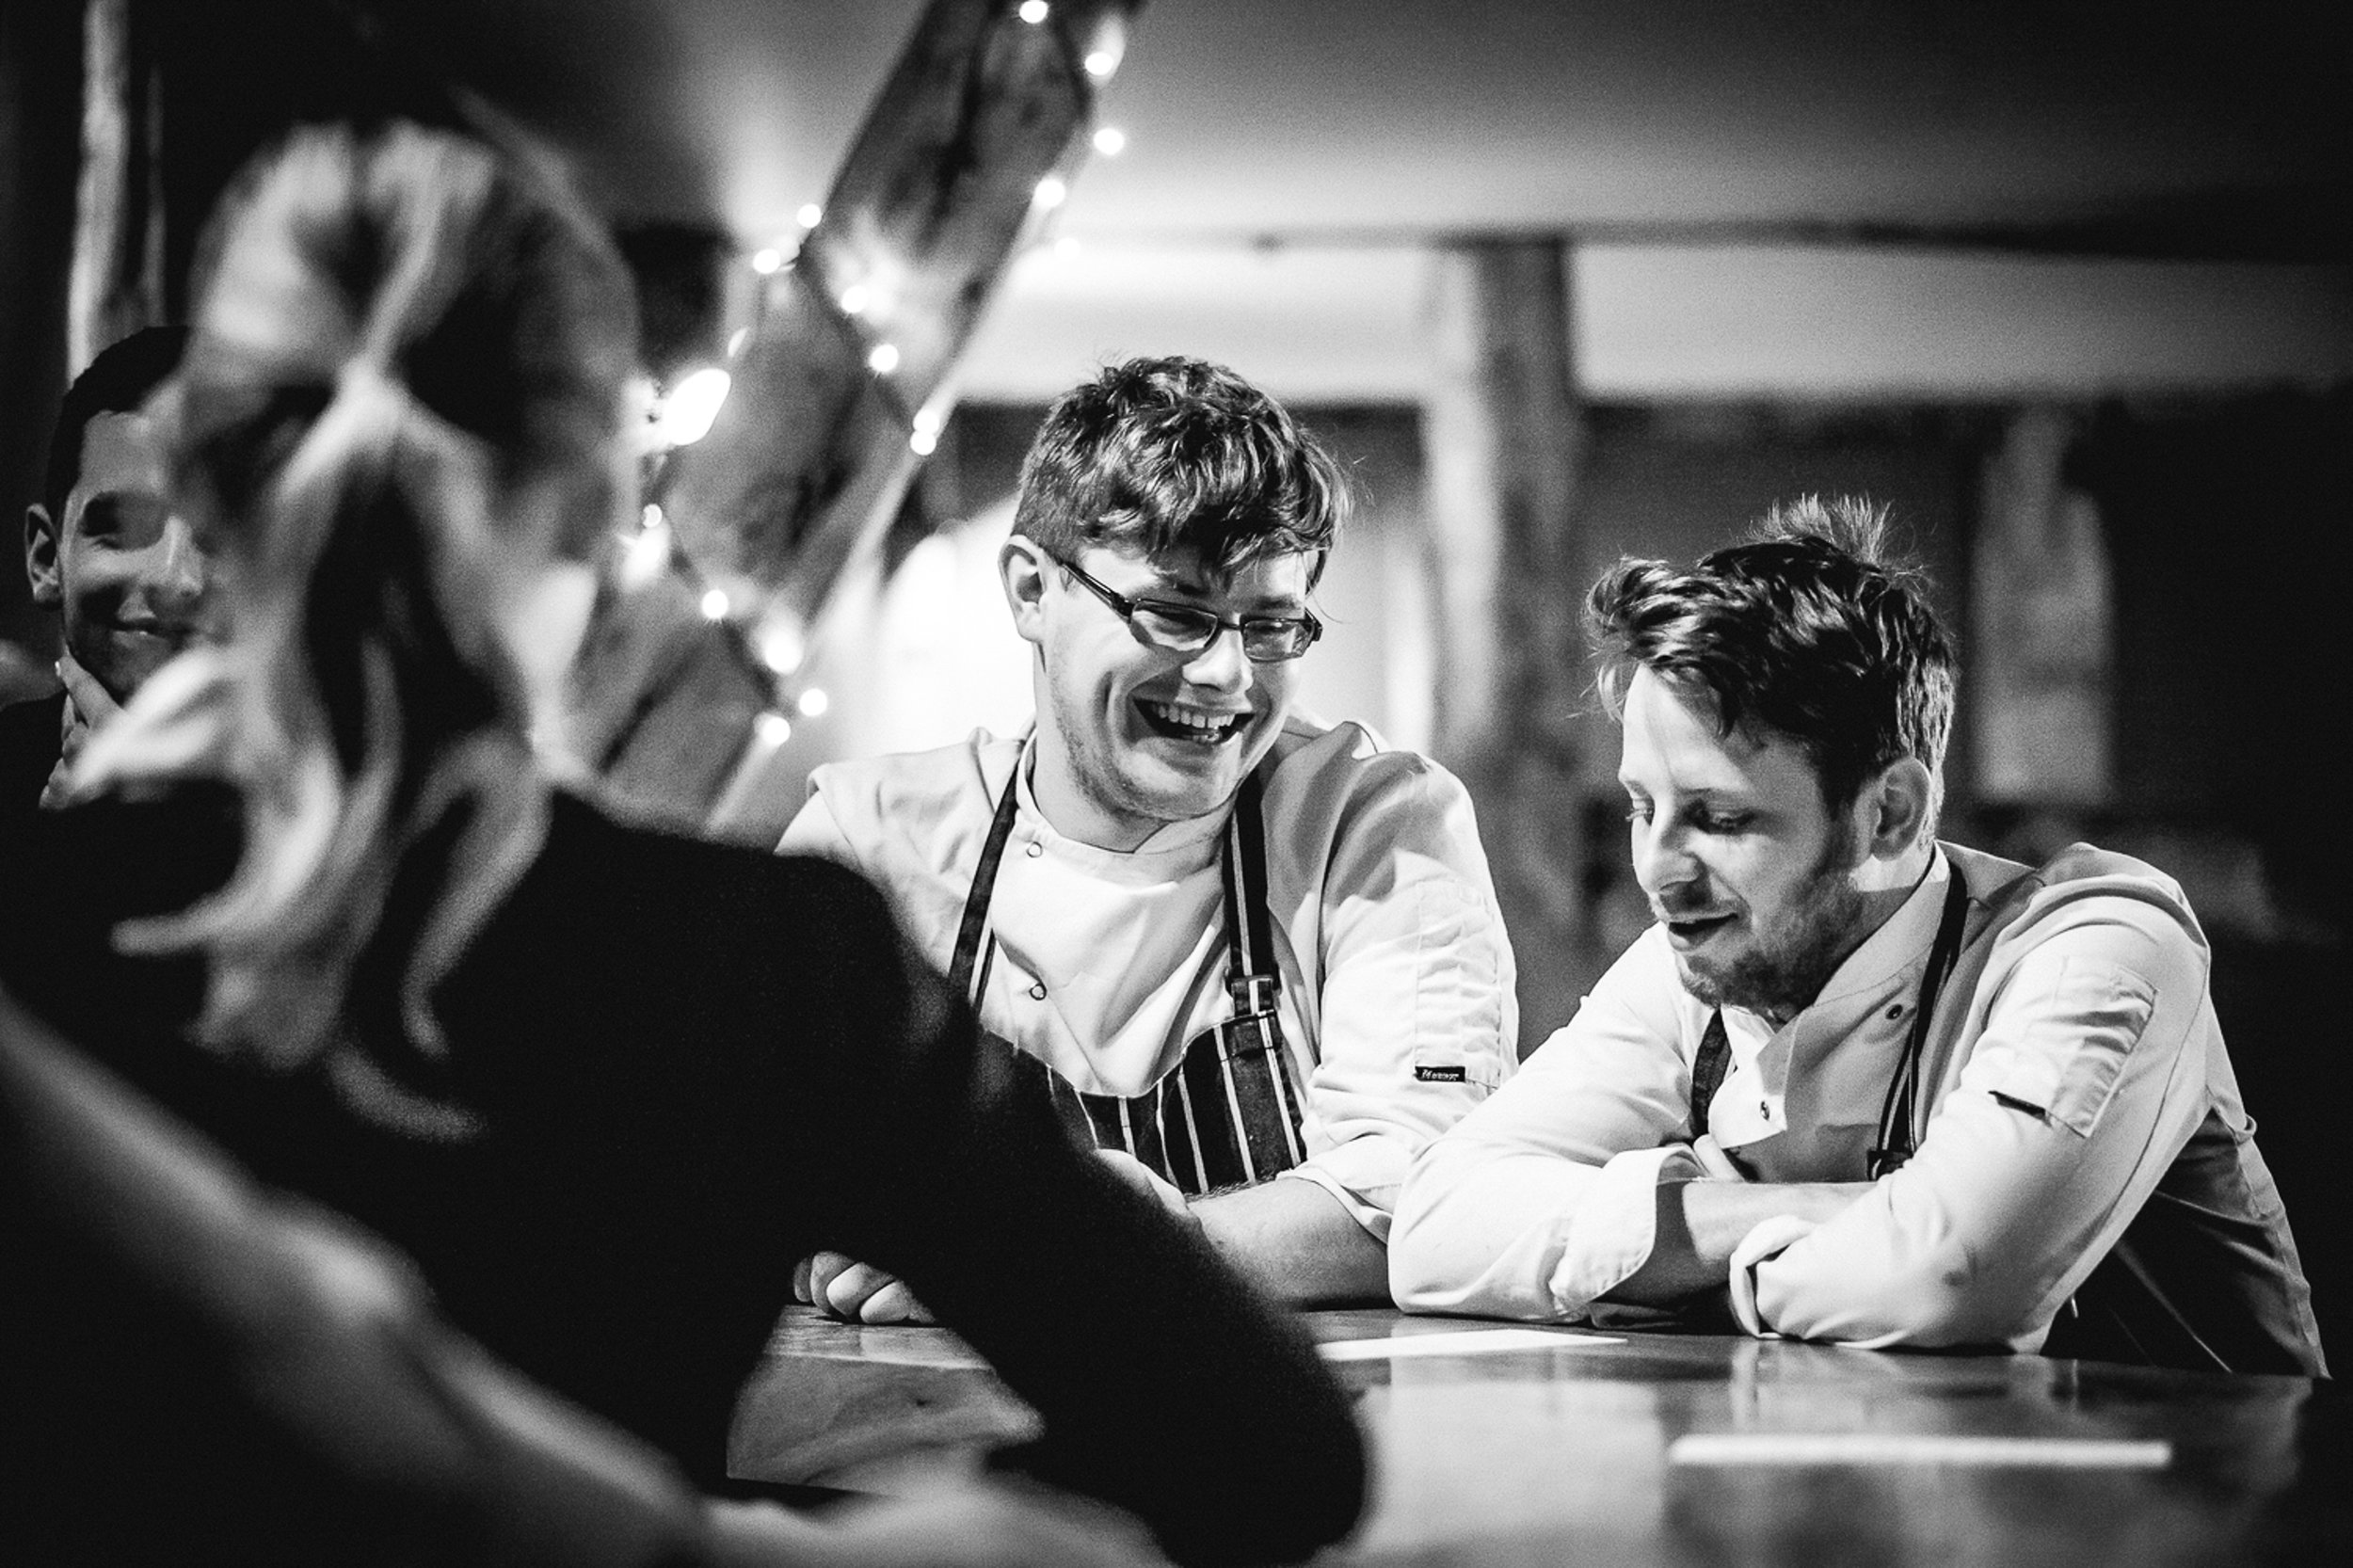 Rupert + Dorian.   circa 2014   -  Rupert helped out at the first supper clubs and would later come on board as a director and head chef of Burger Shop Worcester.